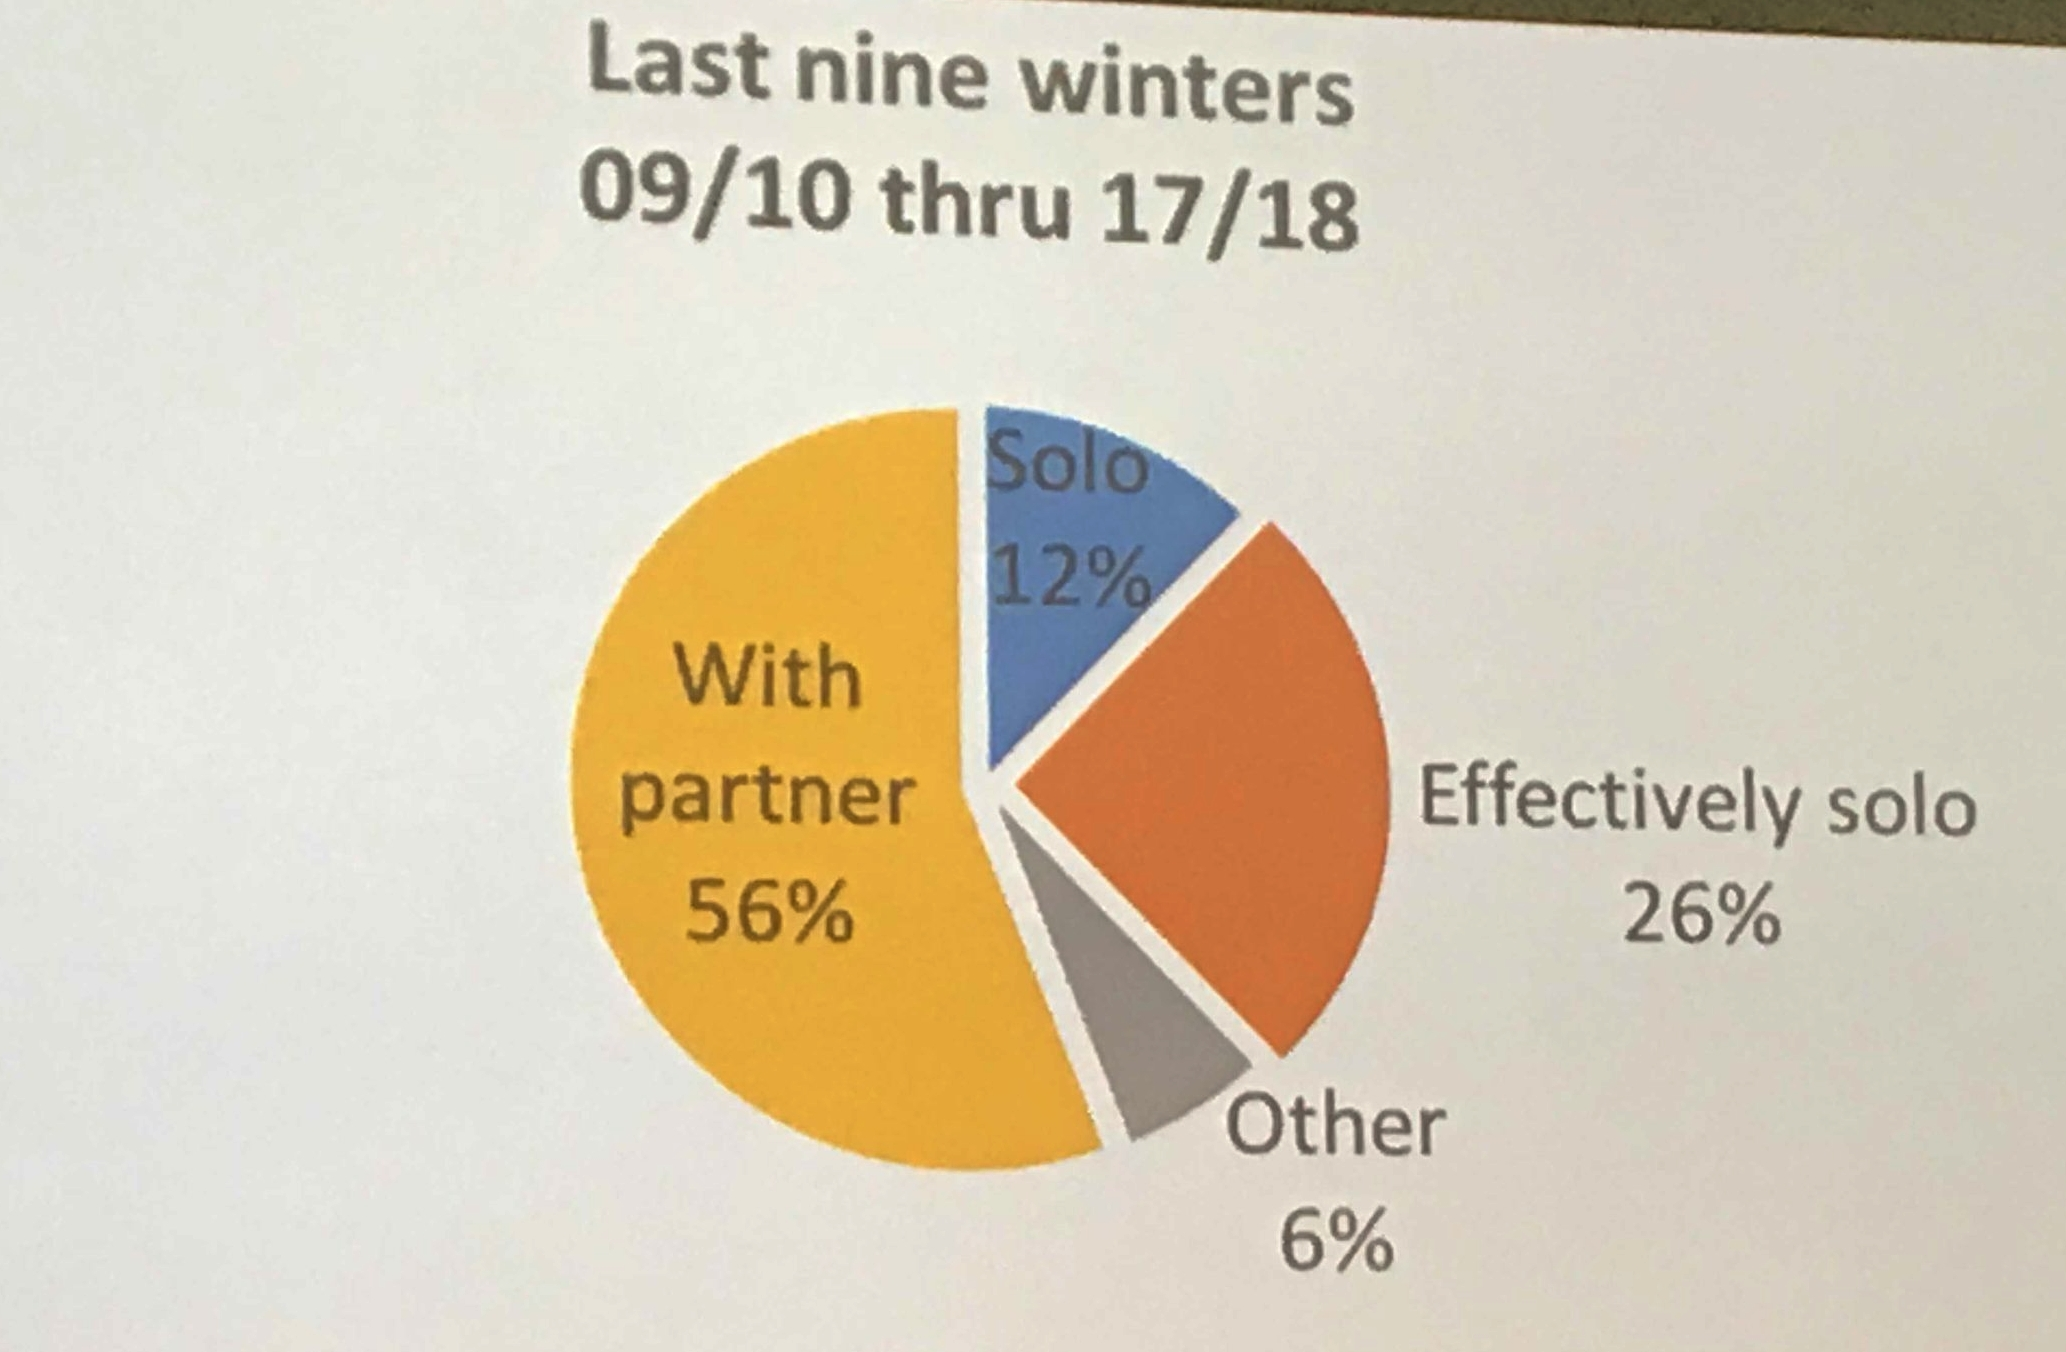 Mark's graph of the whether partners are alone or not in the backcountry